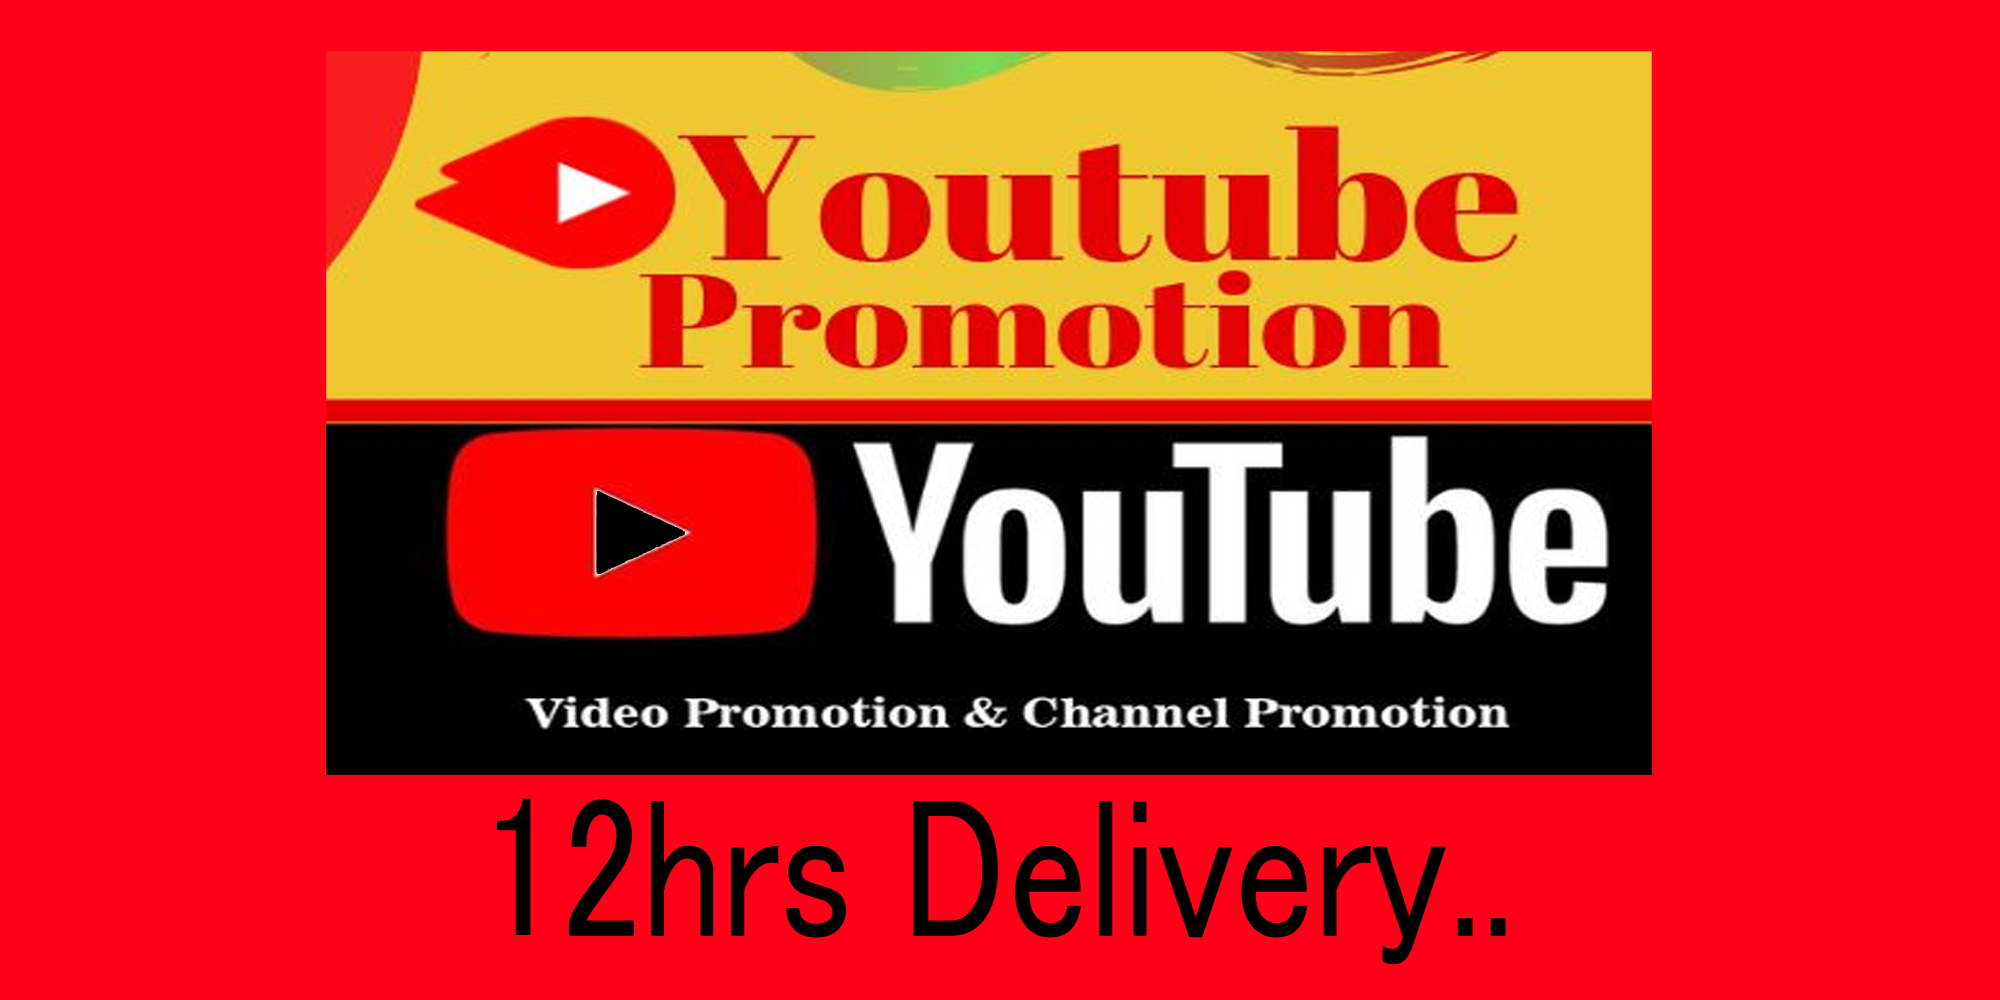 Organic Fast, nondrop Youtube Video Promotion and seo marketing